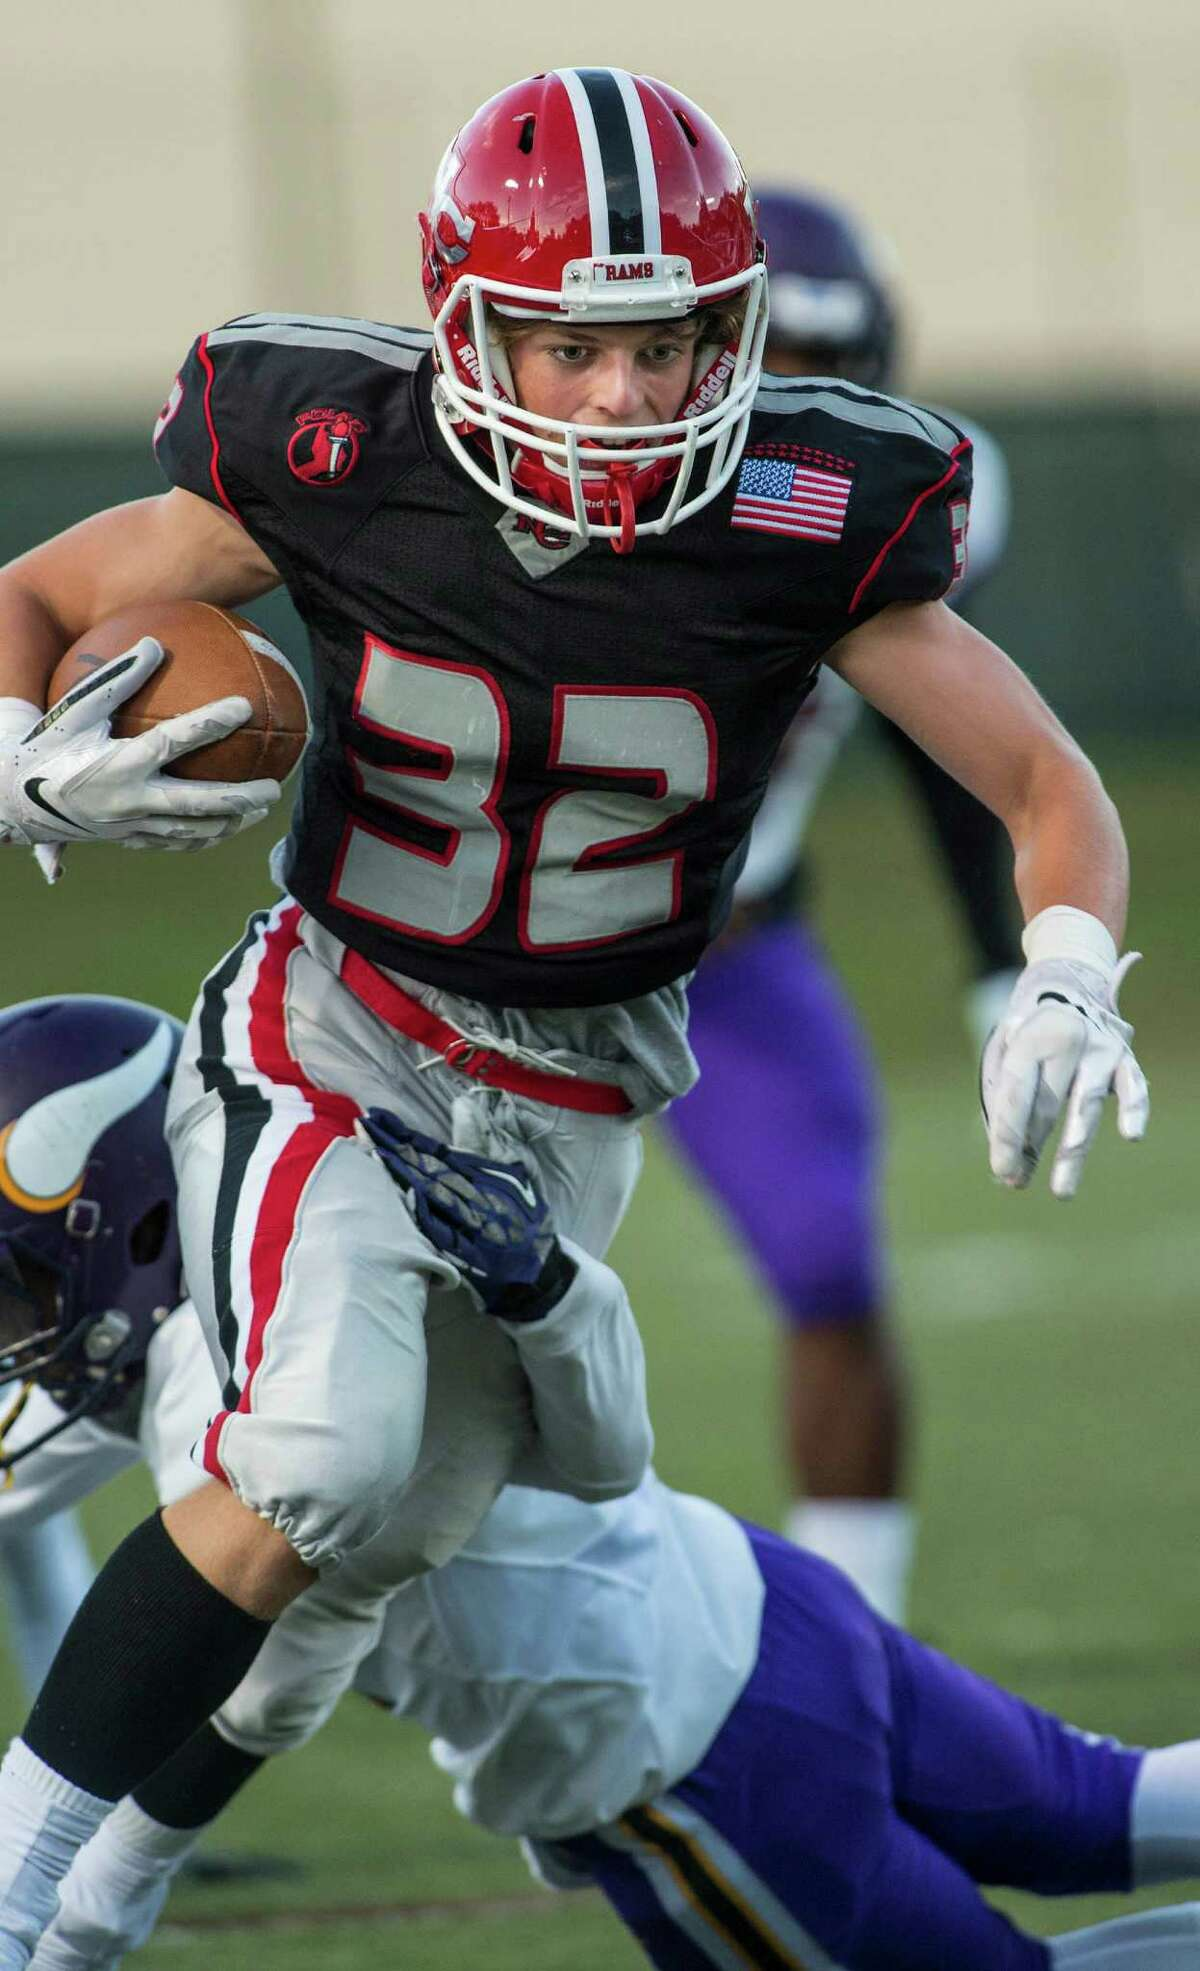 New Canaan High Schools Graham Braden trying to get by a Westhill High School defender during a football game played at New Canaan High School, New Canaan, CT on Monday, October 5, 2015.